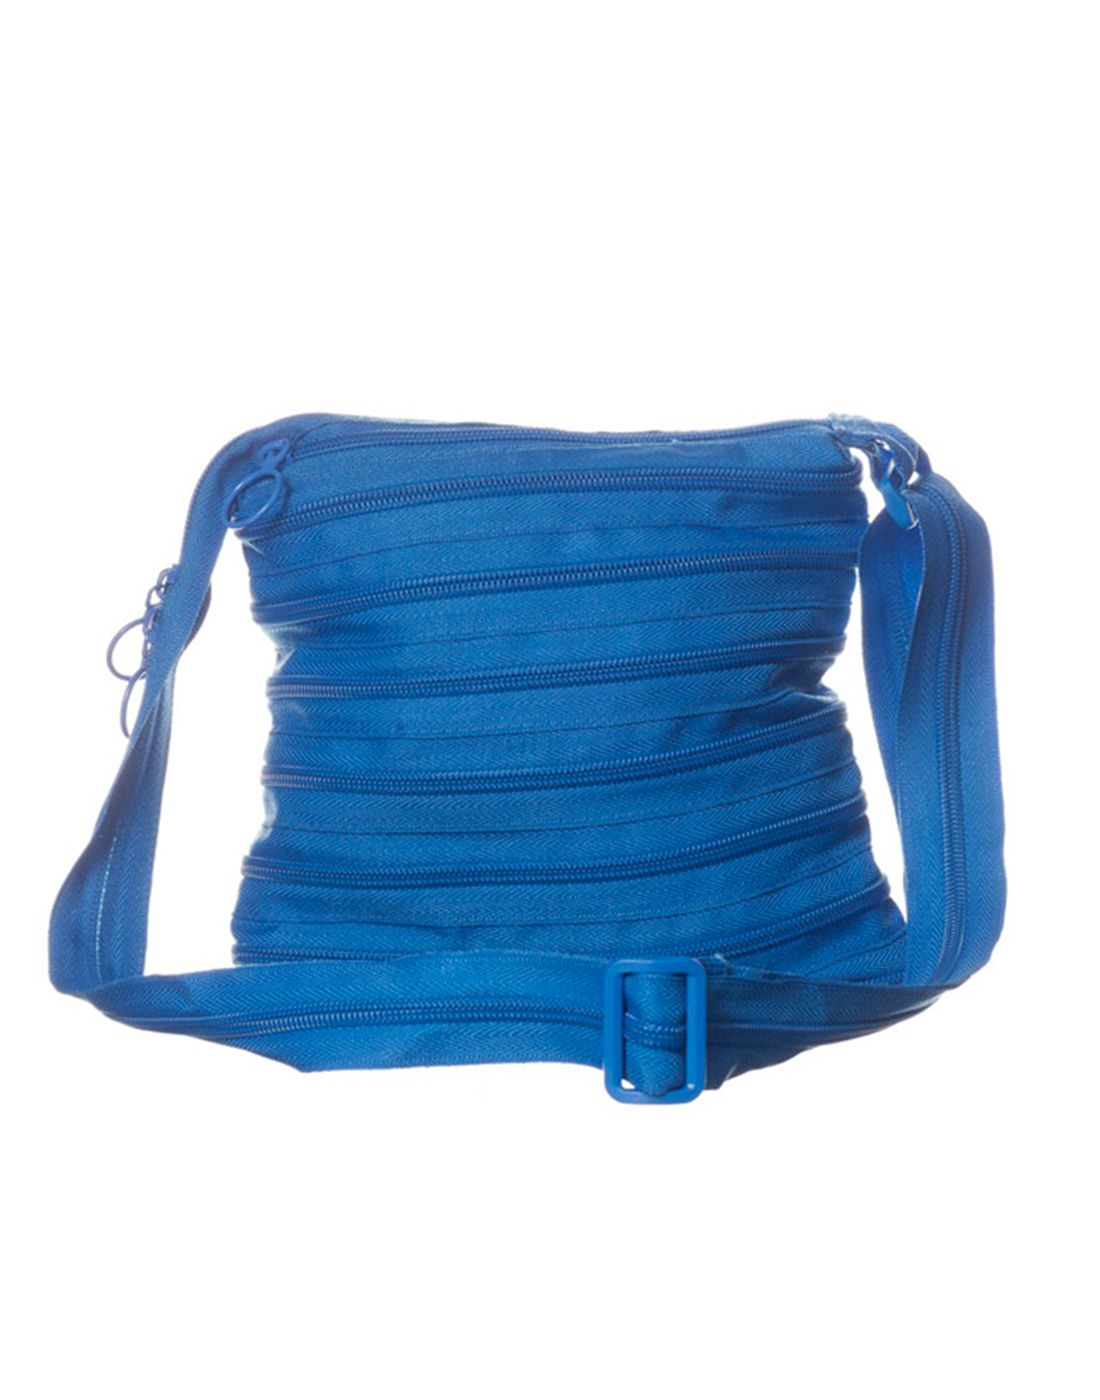 ... UNTOLD ZIPIT Monstar Teeth Mini Shoulder Bag for Kids, Women ,Girls - Blue